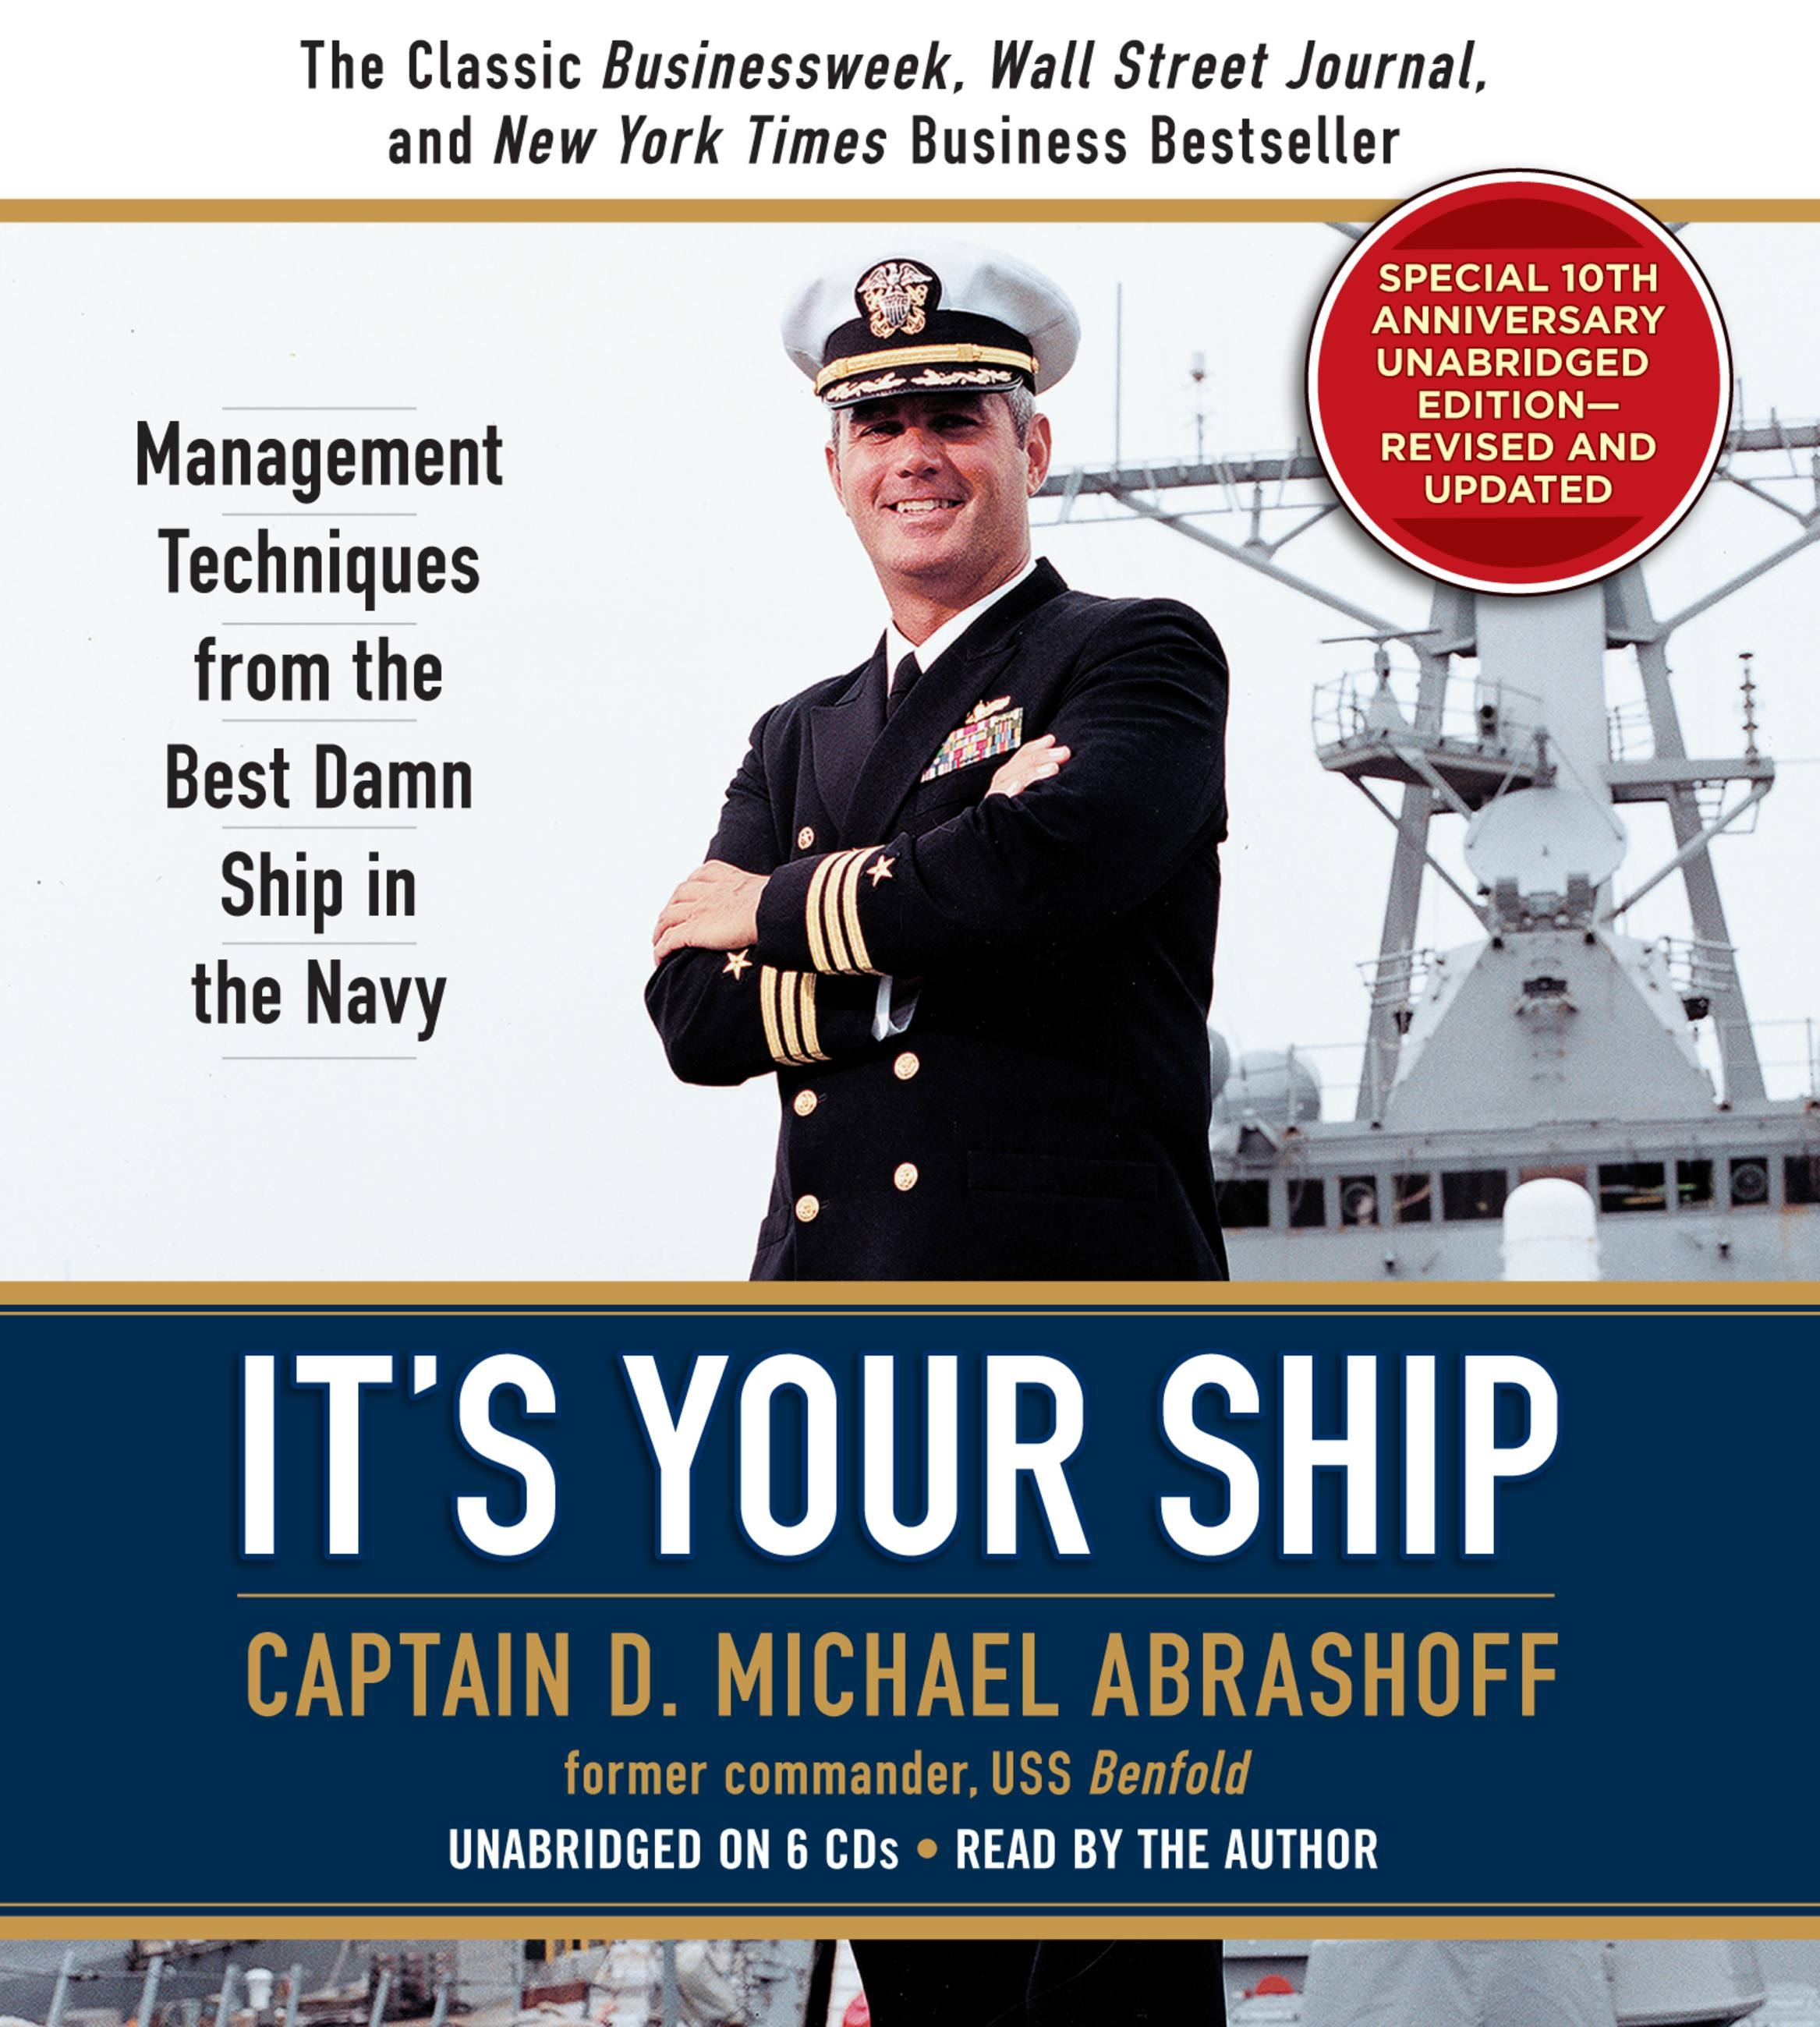 an introduction to the commander mike abrashoff of the uss benefold Need writing essay about different types of leadership different types of leadership essay examples to the commander mike abrashoff of the uss benefold.